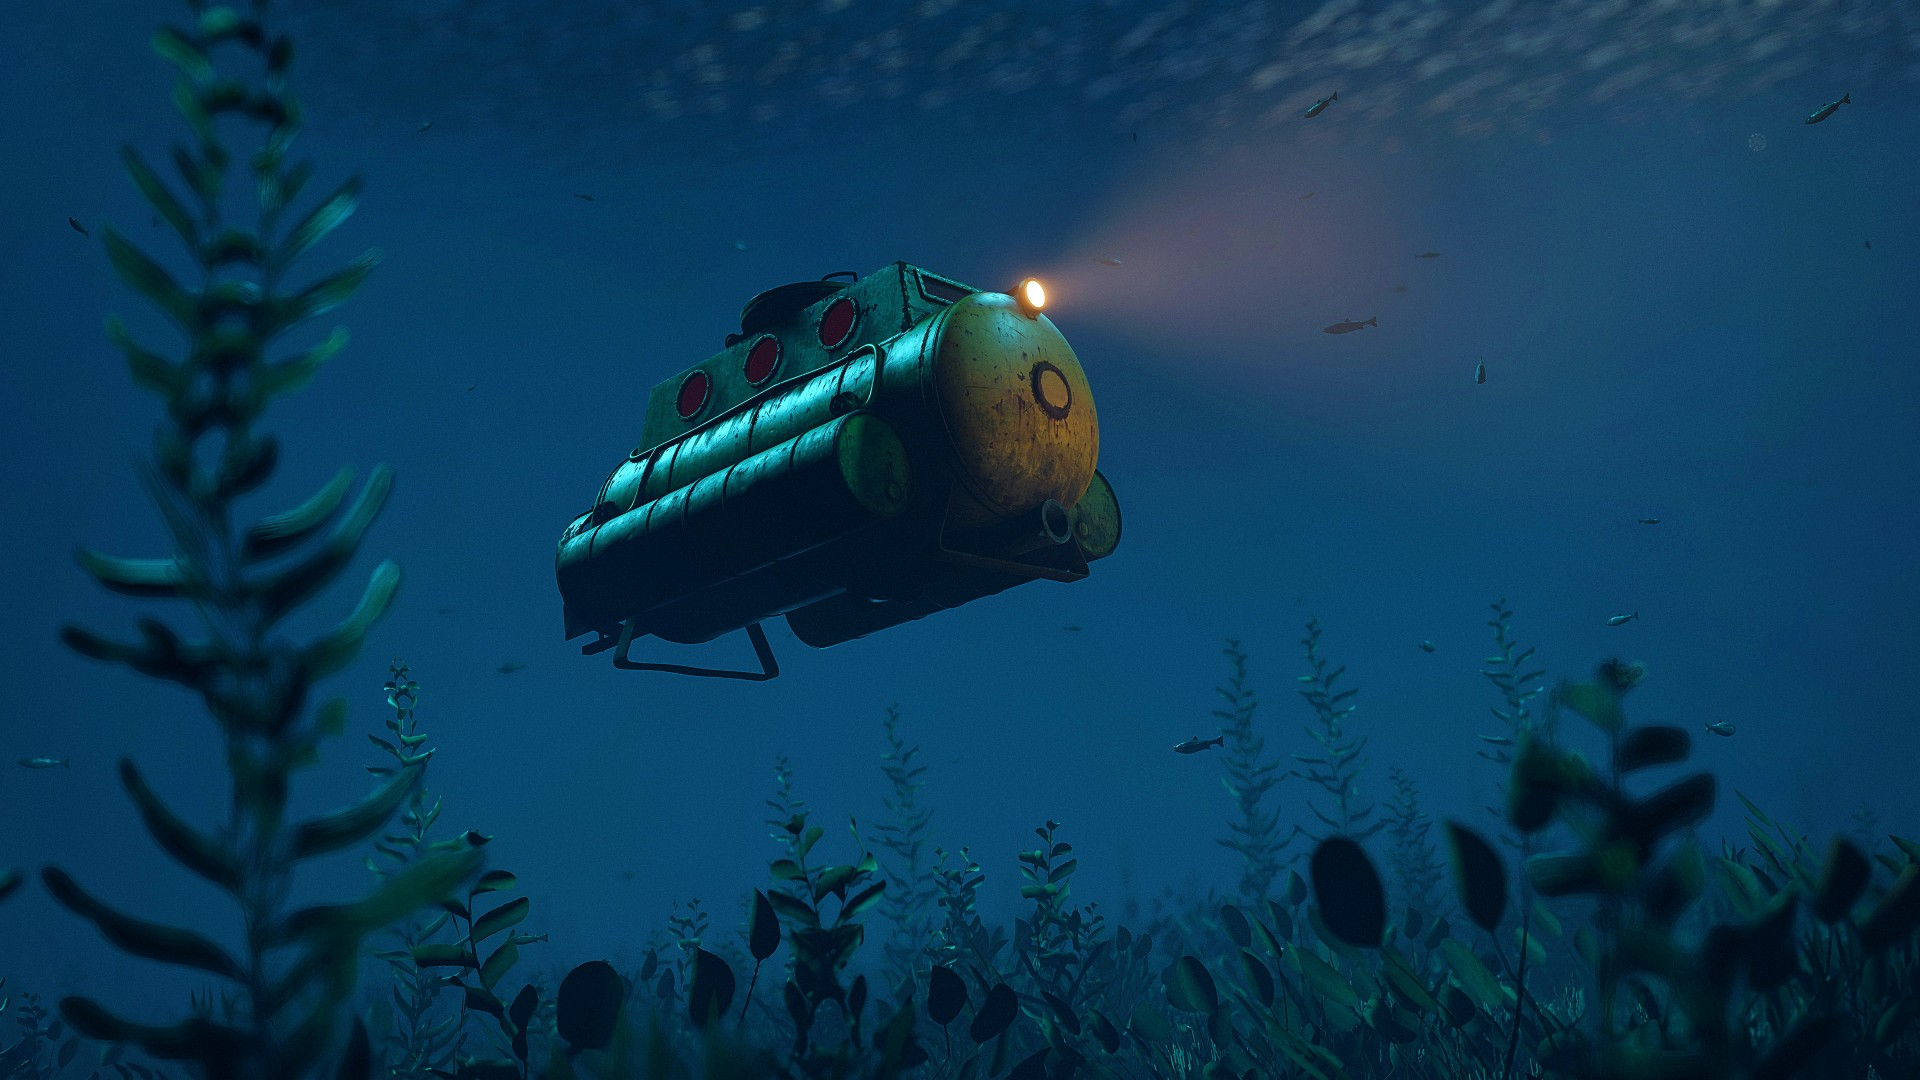 Rust is getting an underwater biome, underwater dungeons, and fishing